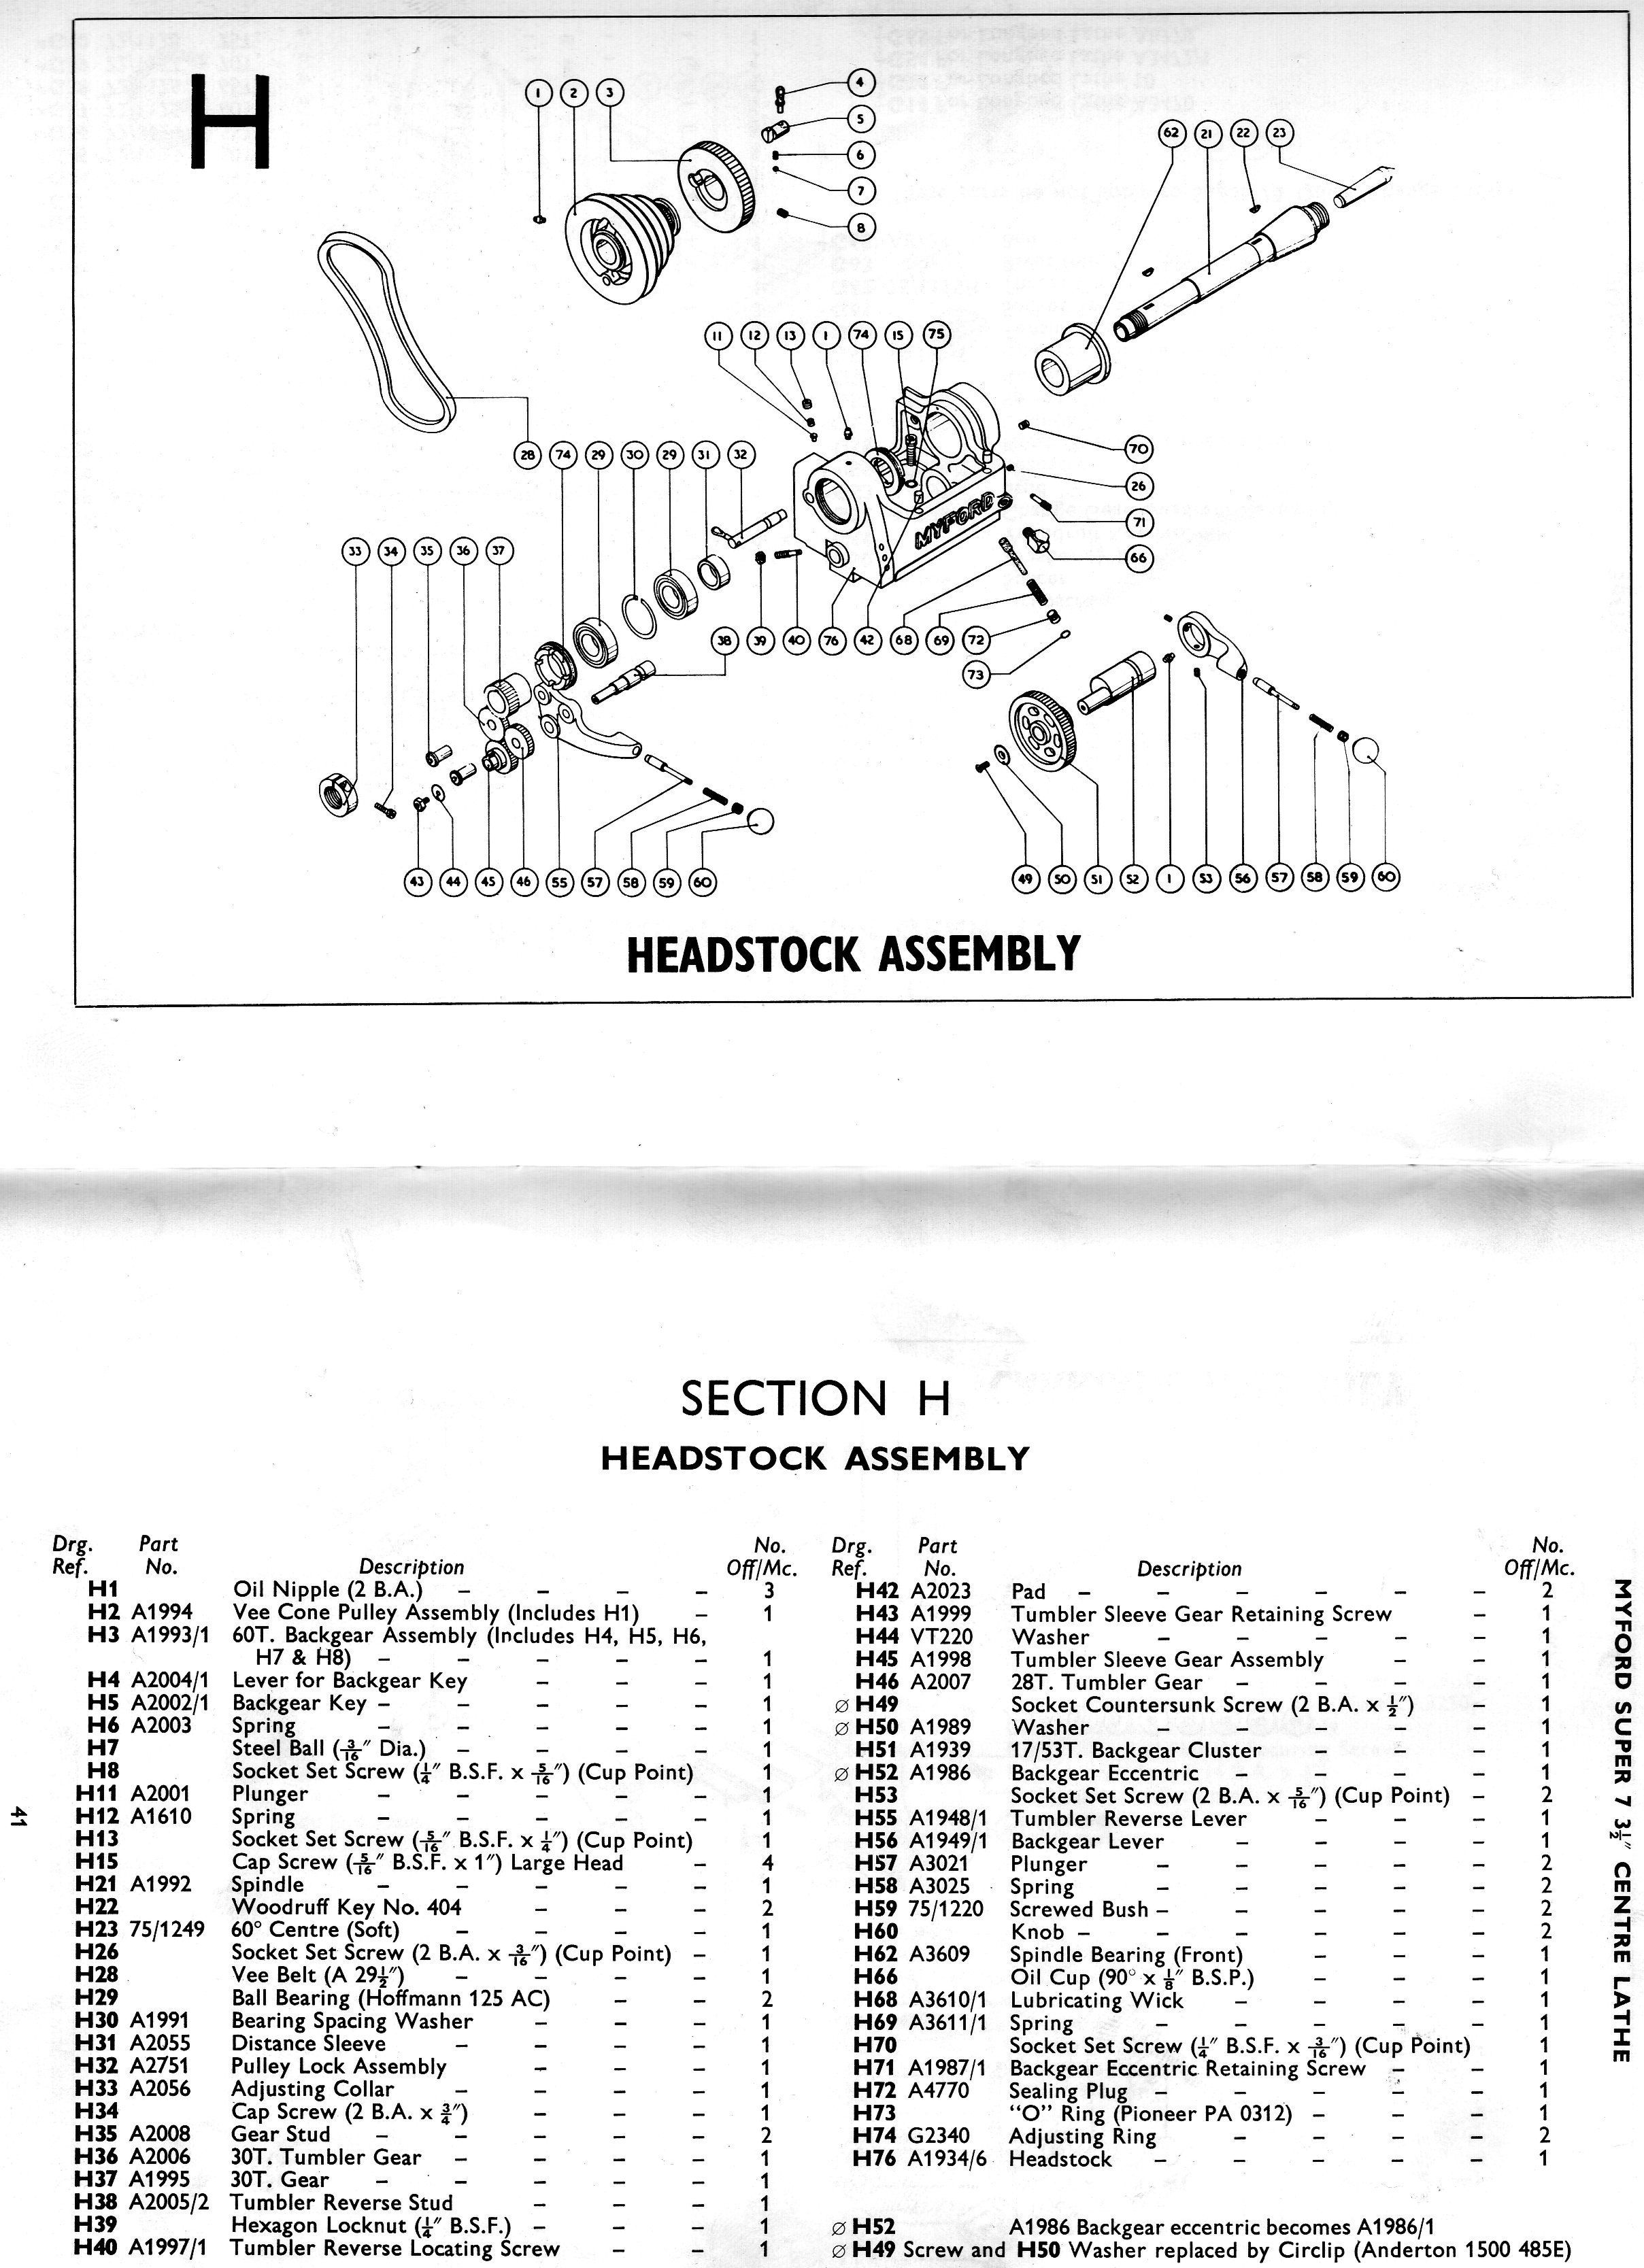 hight resolution of exploded parts diagram lathe machine metal workshop technical illustration engineering tools metal